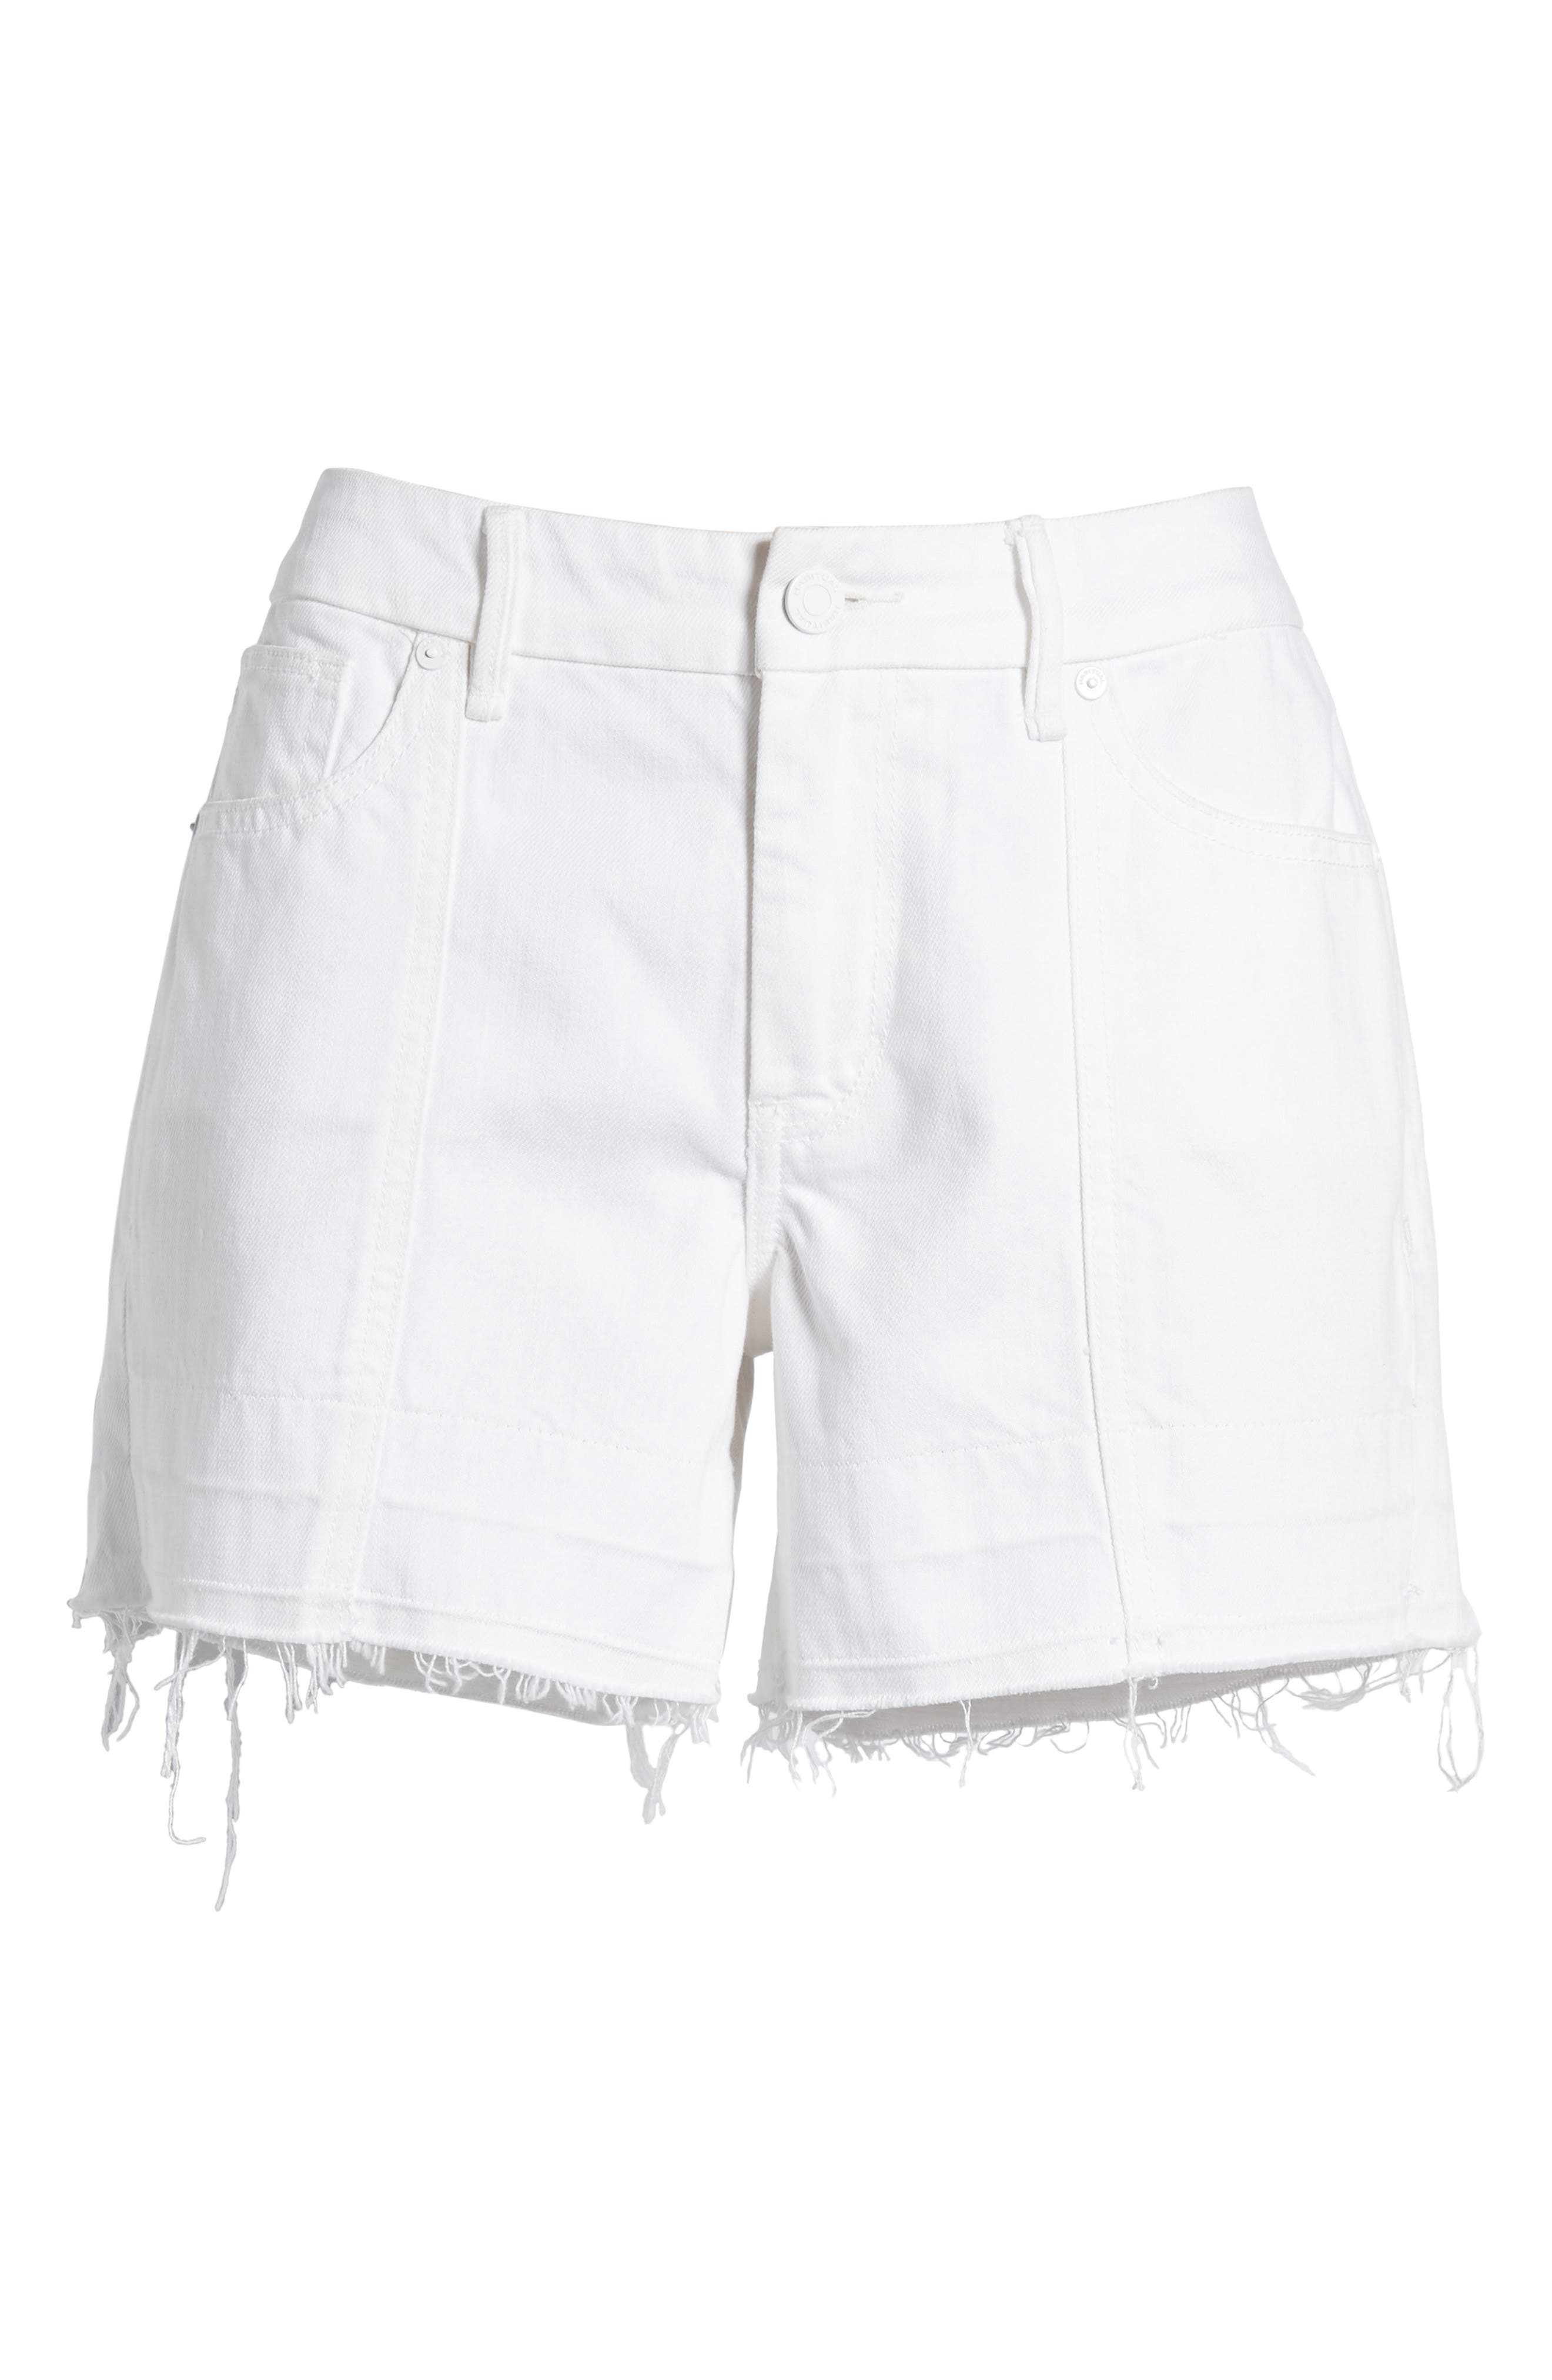 Crosby Release Hem Shorts,                             Alternate thumbnail 6, color,                             165